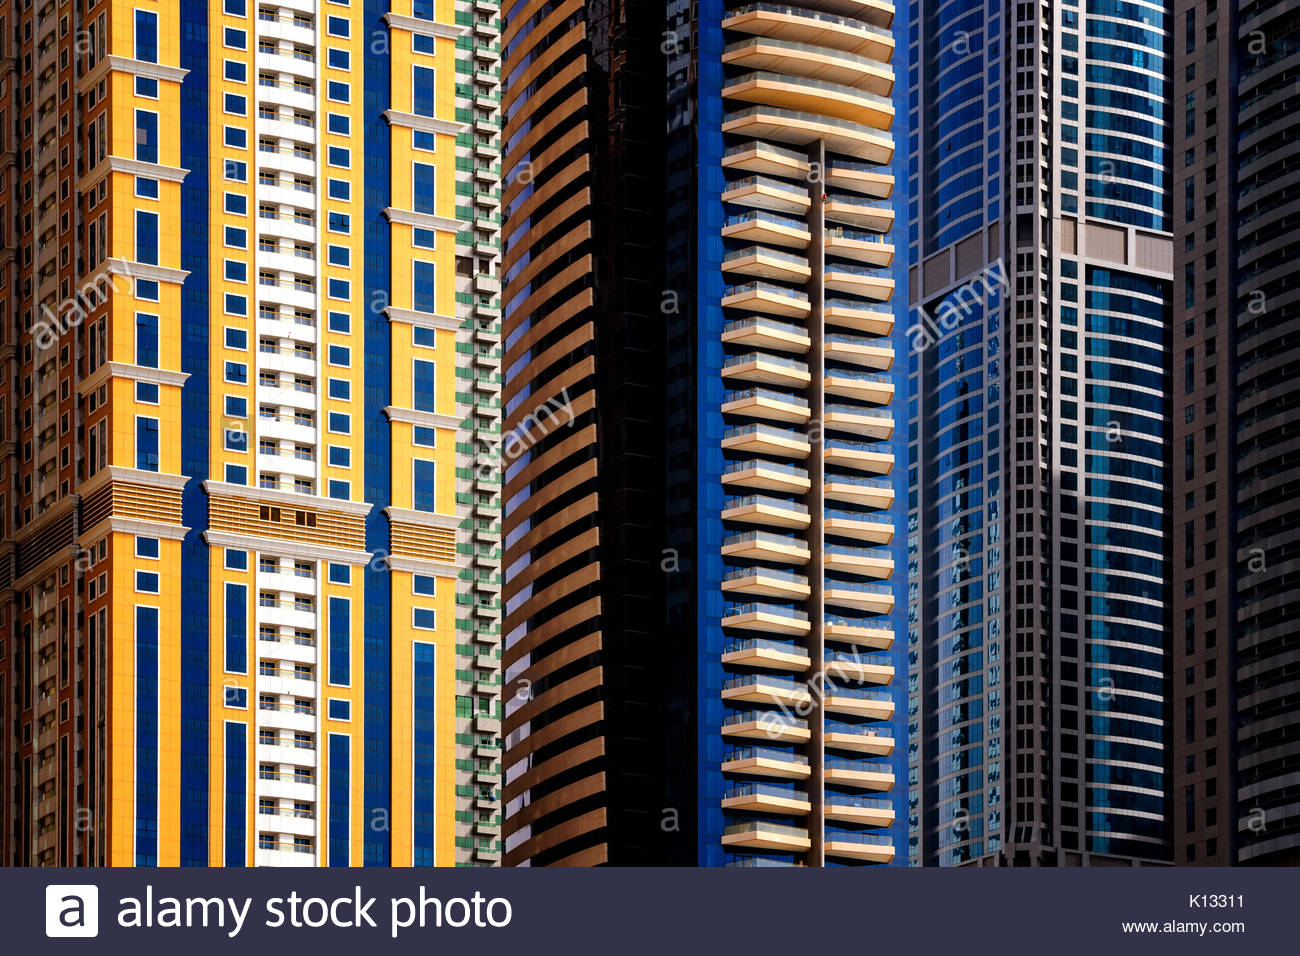 DUBAI, UAE - APR 10, 2013: Majestic colorful dubai marina skyscrapers. Detail of world tallest residential buildings. - Stock Image